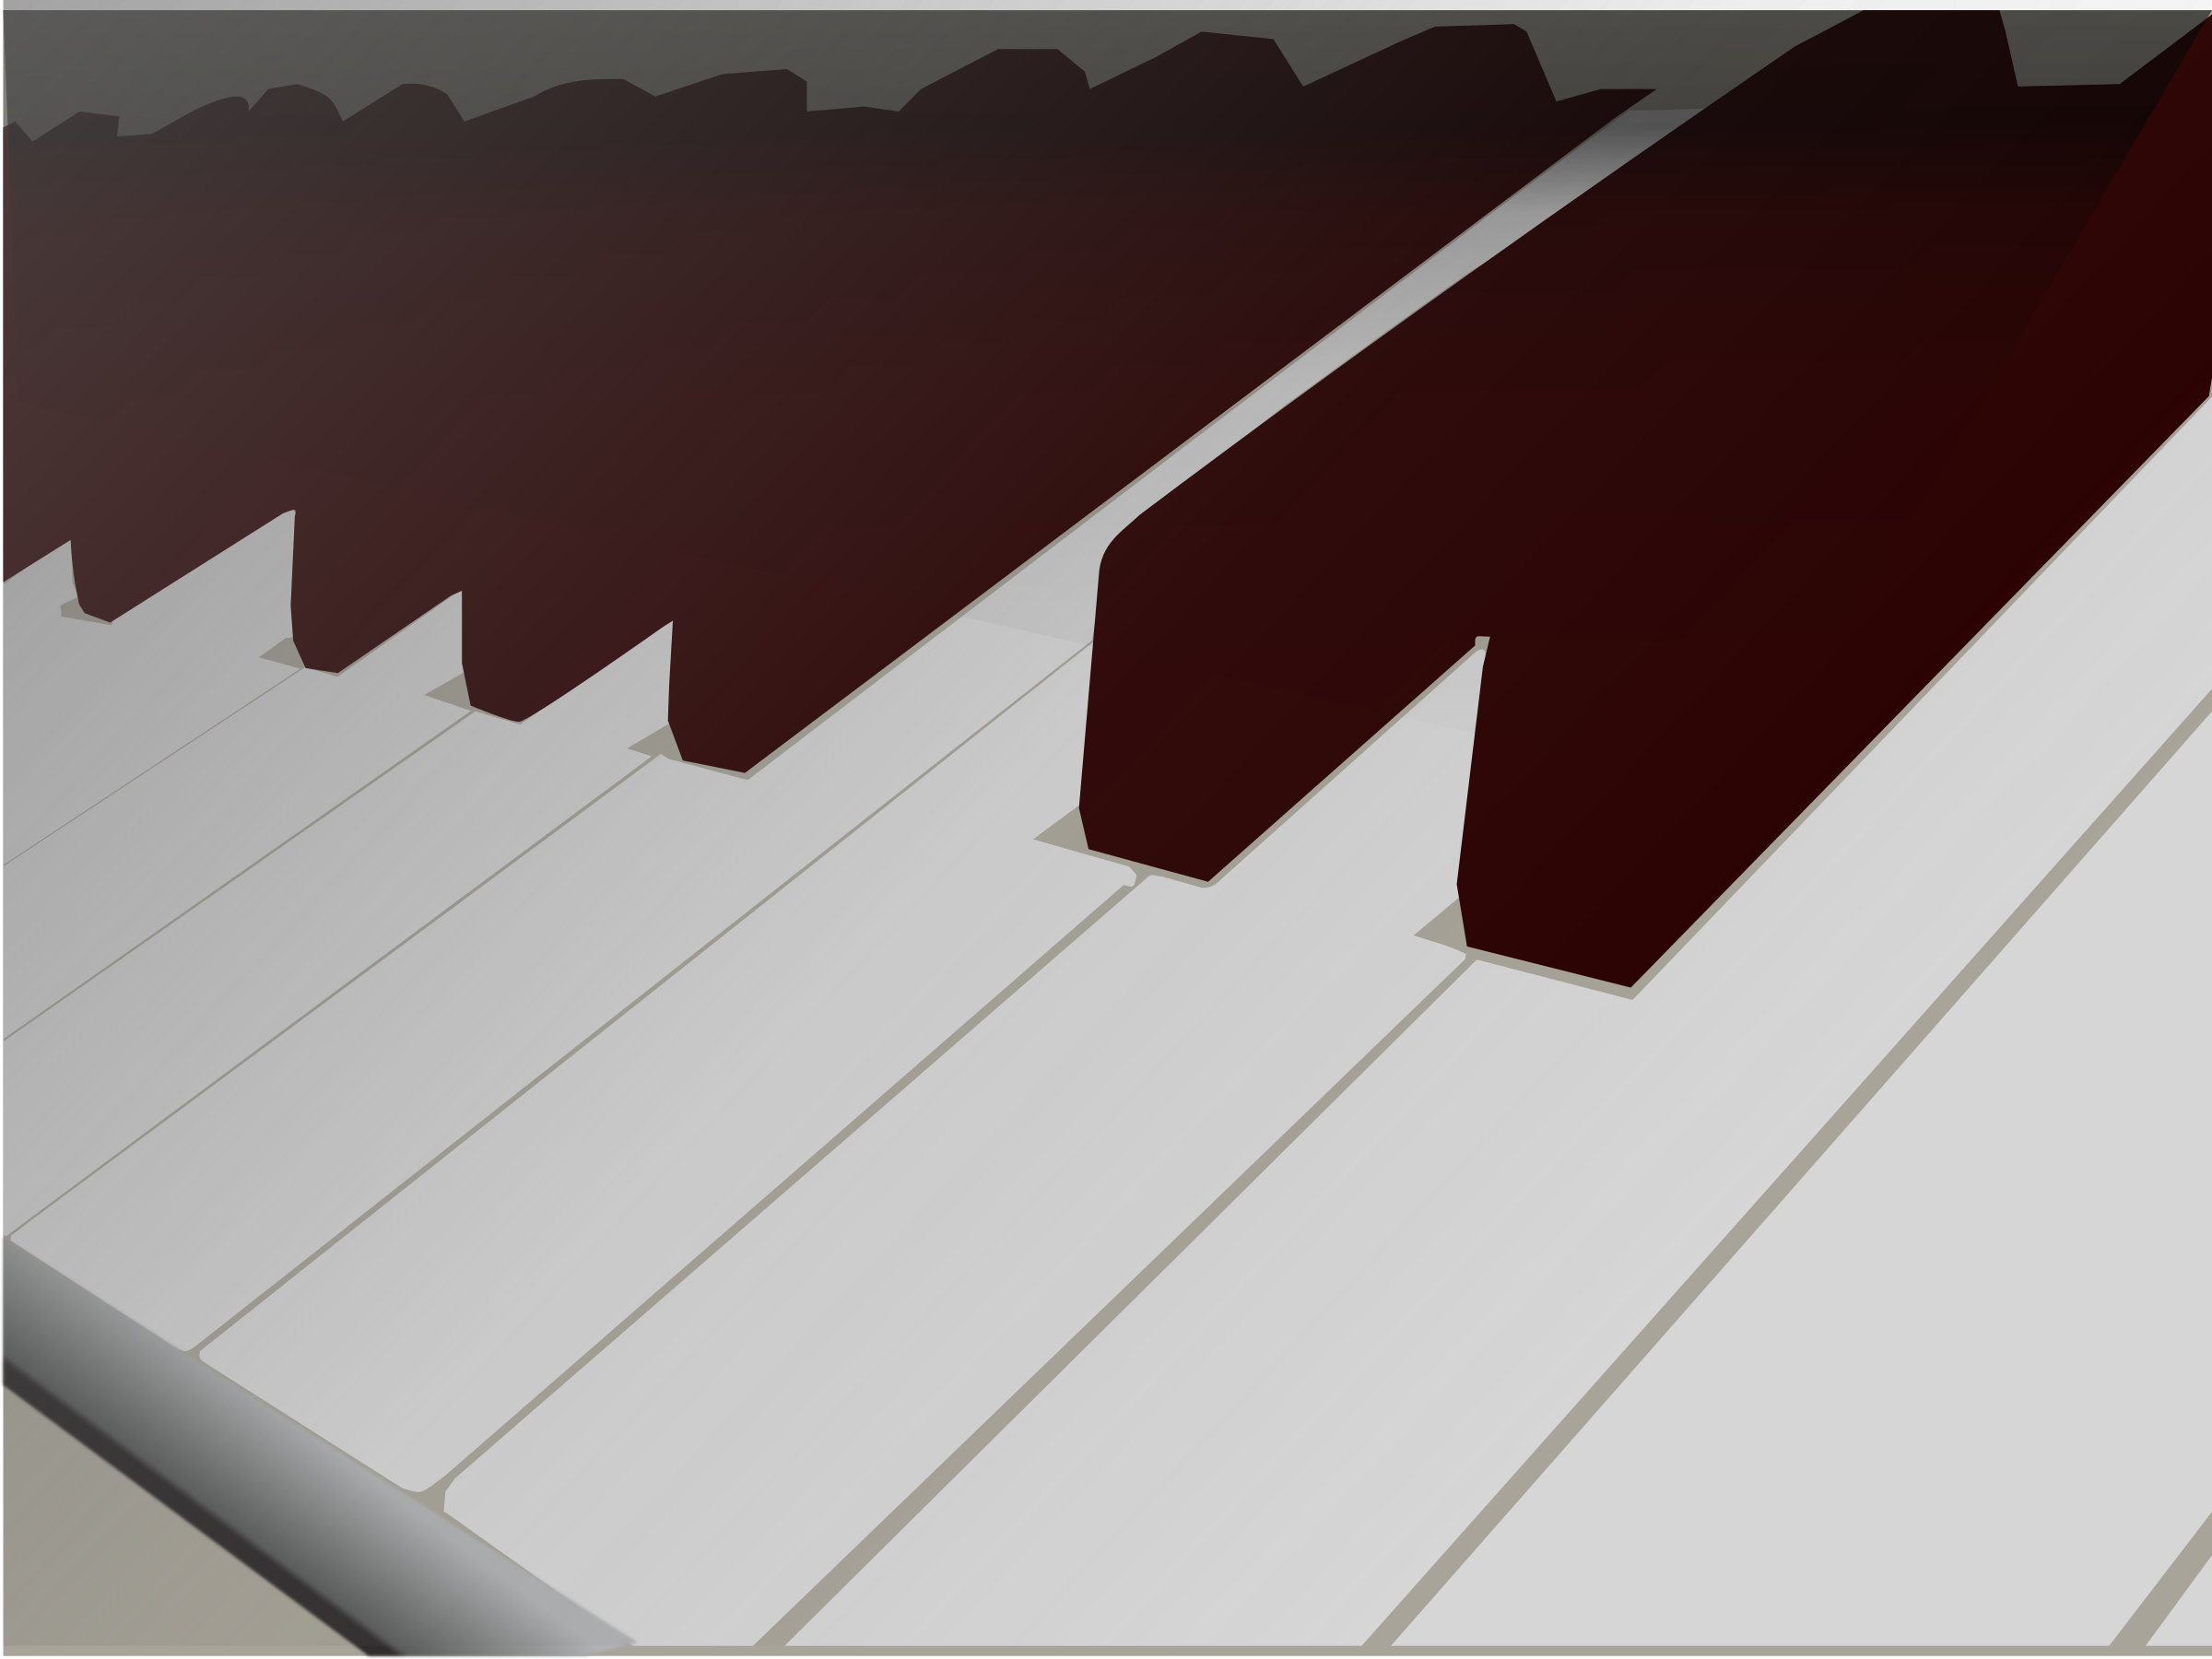 Piano Keyboard by SunKing2